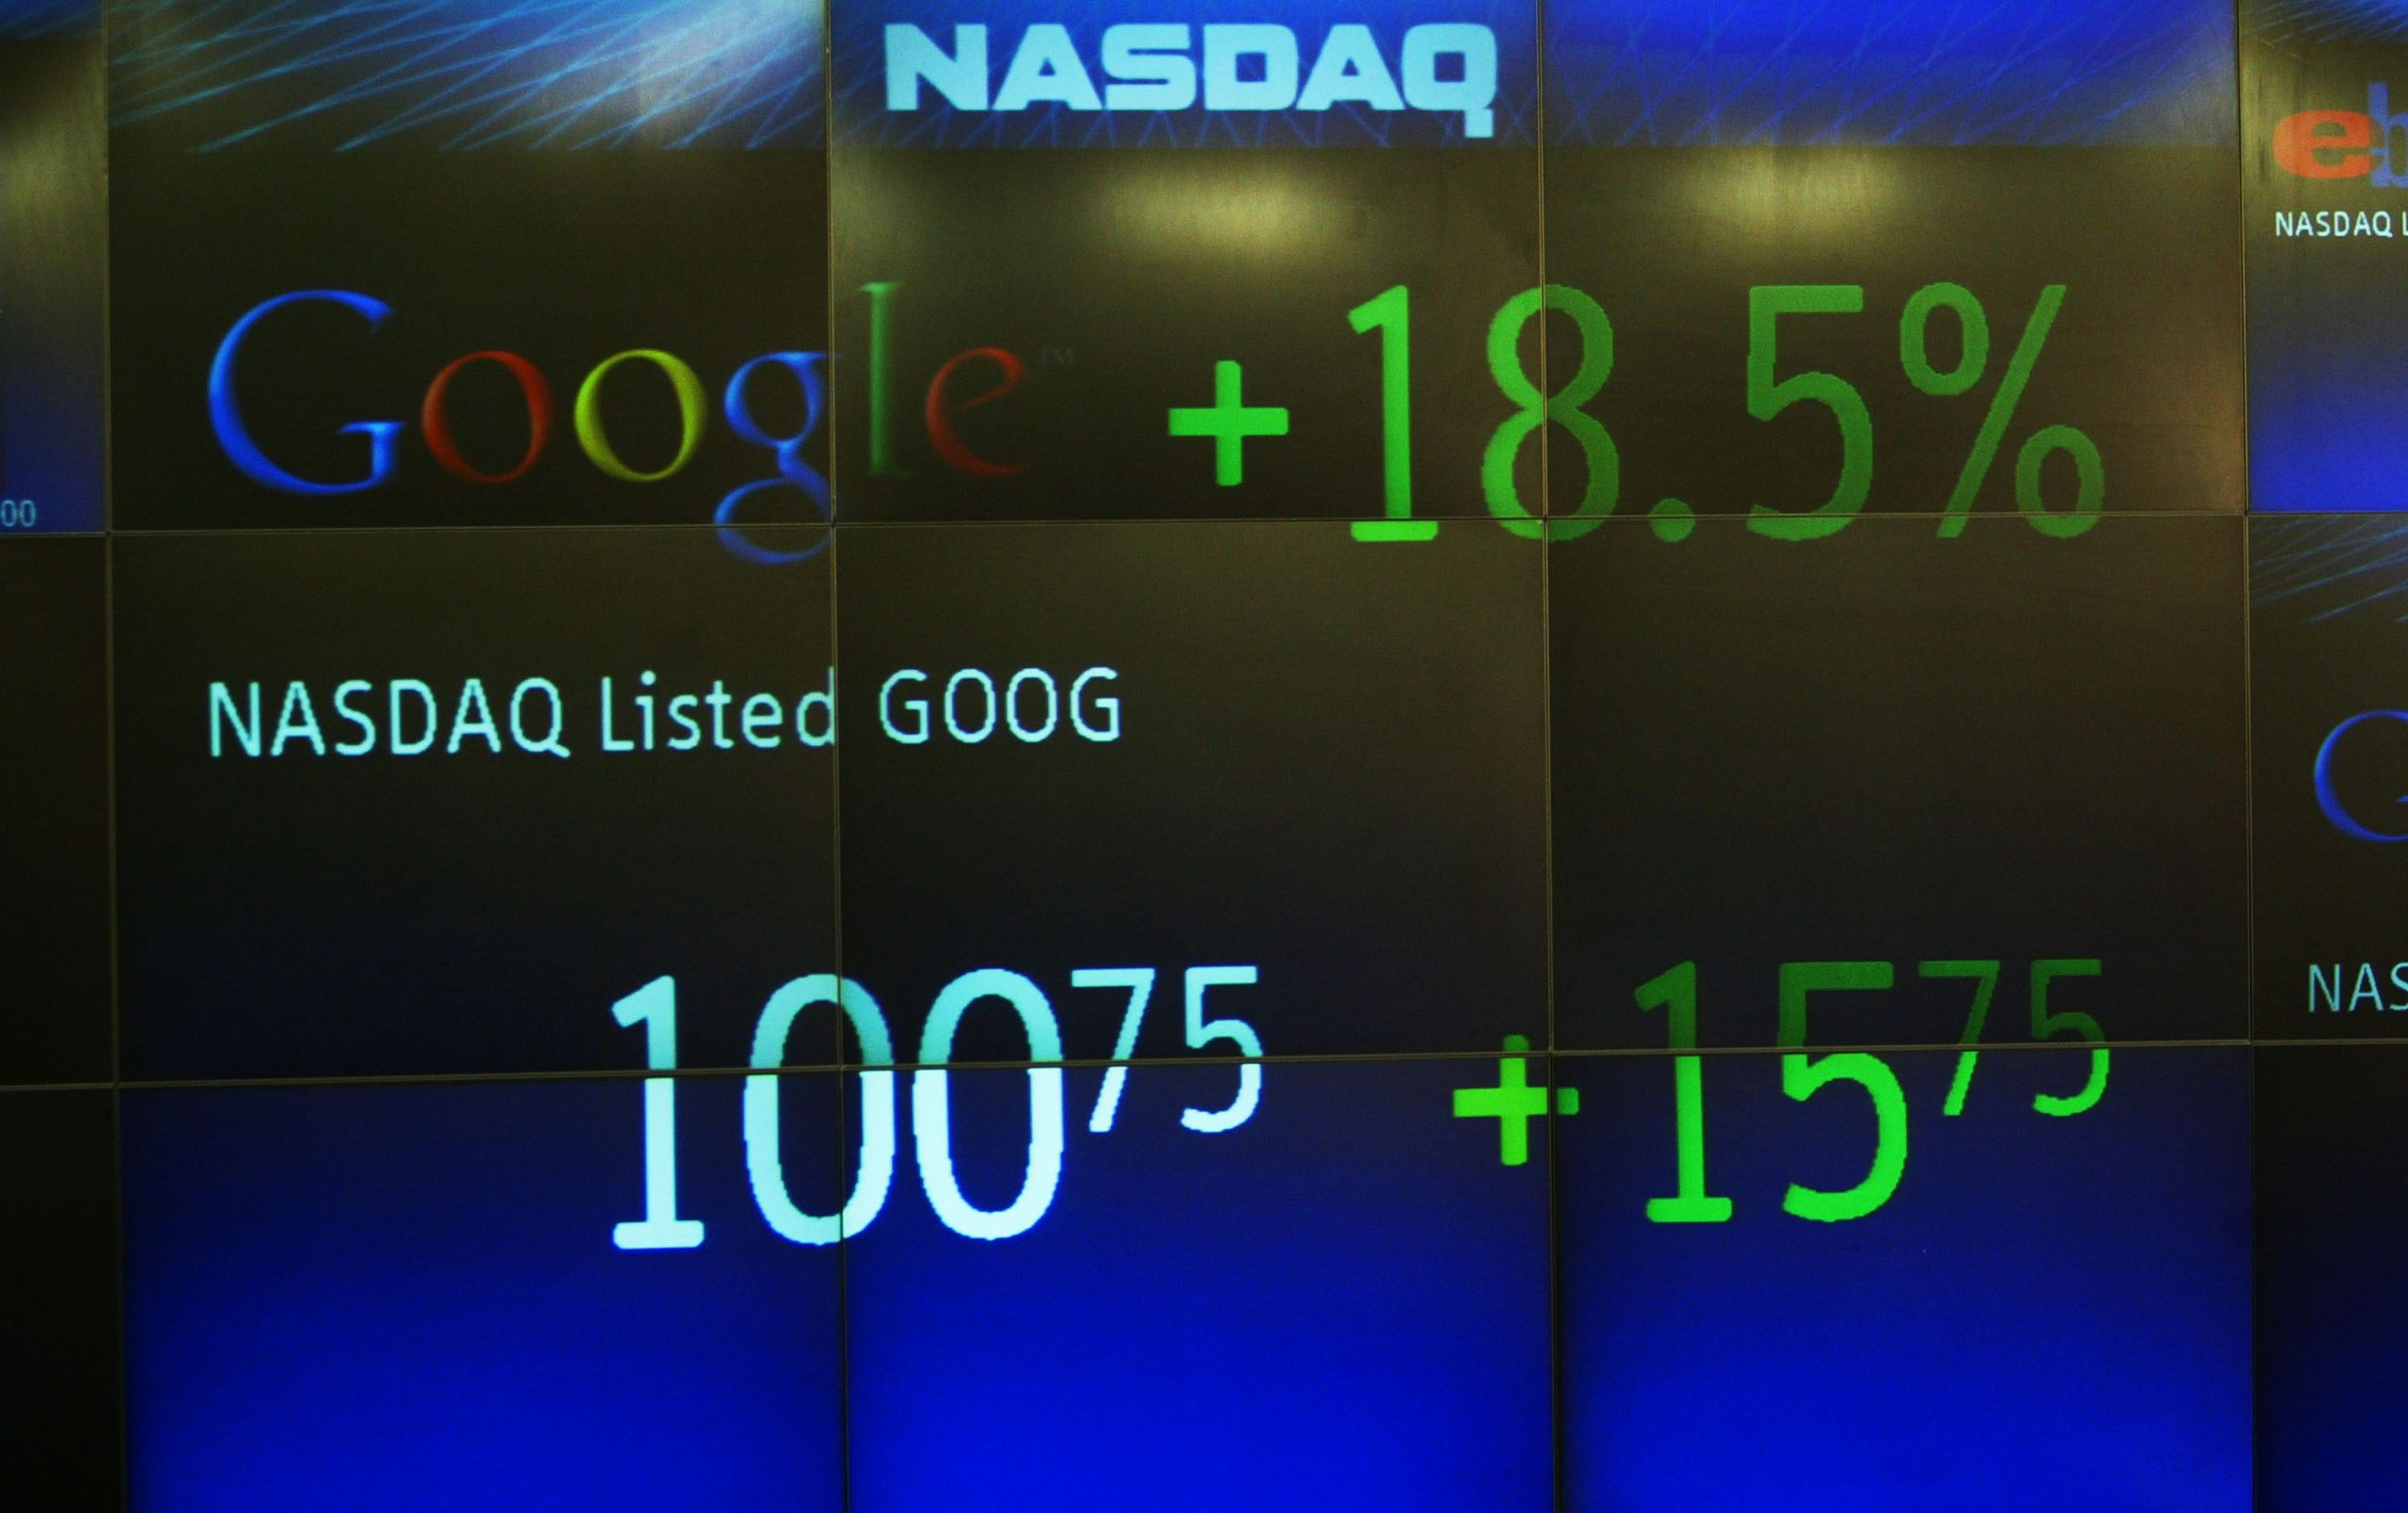 Nasdaq Goog Witnesses A Huge Disturbance In Stock Values